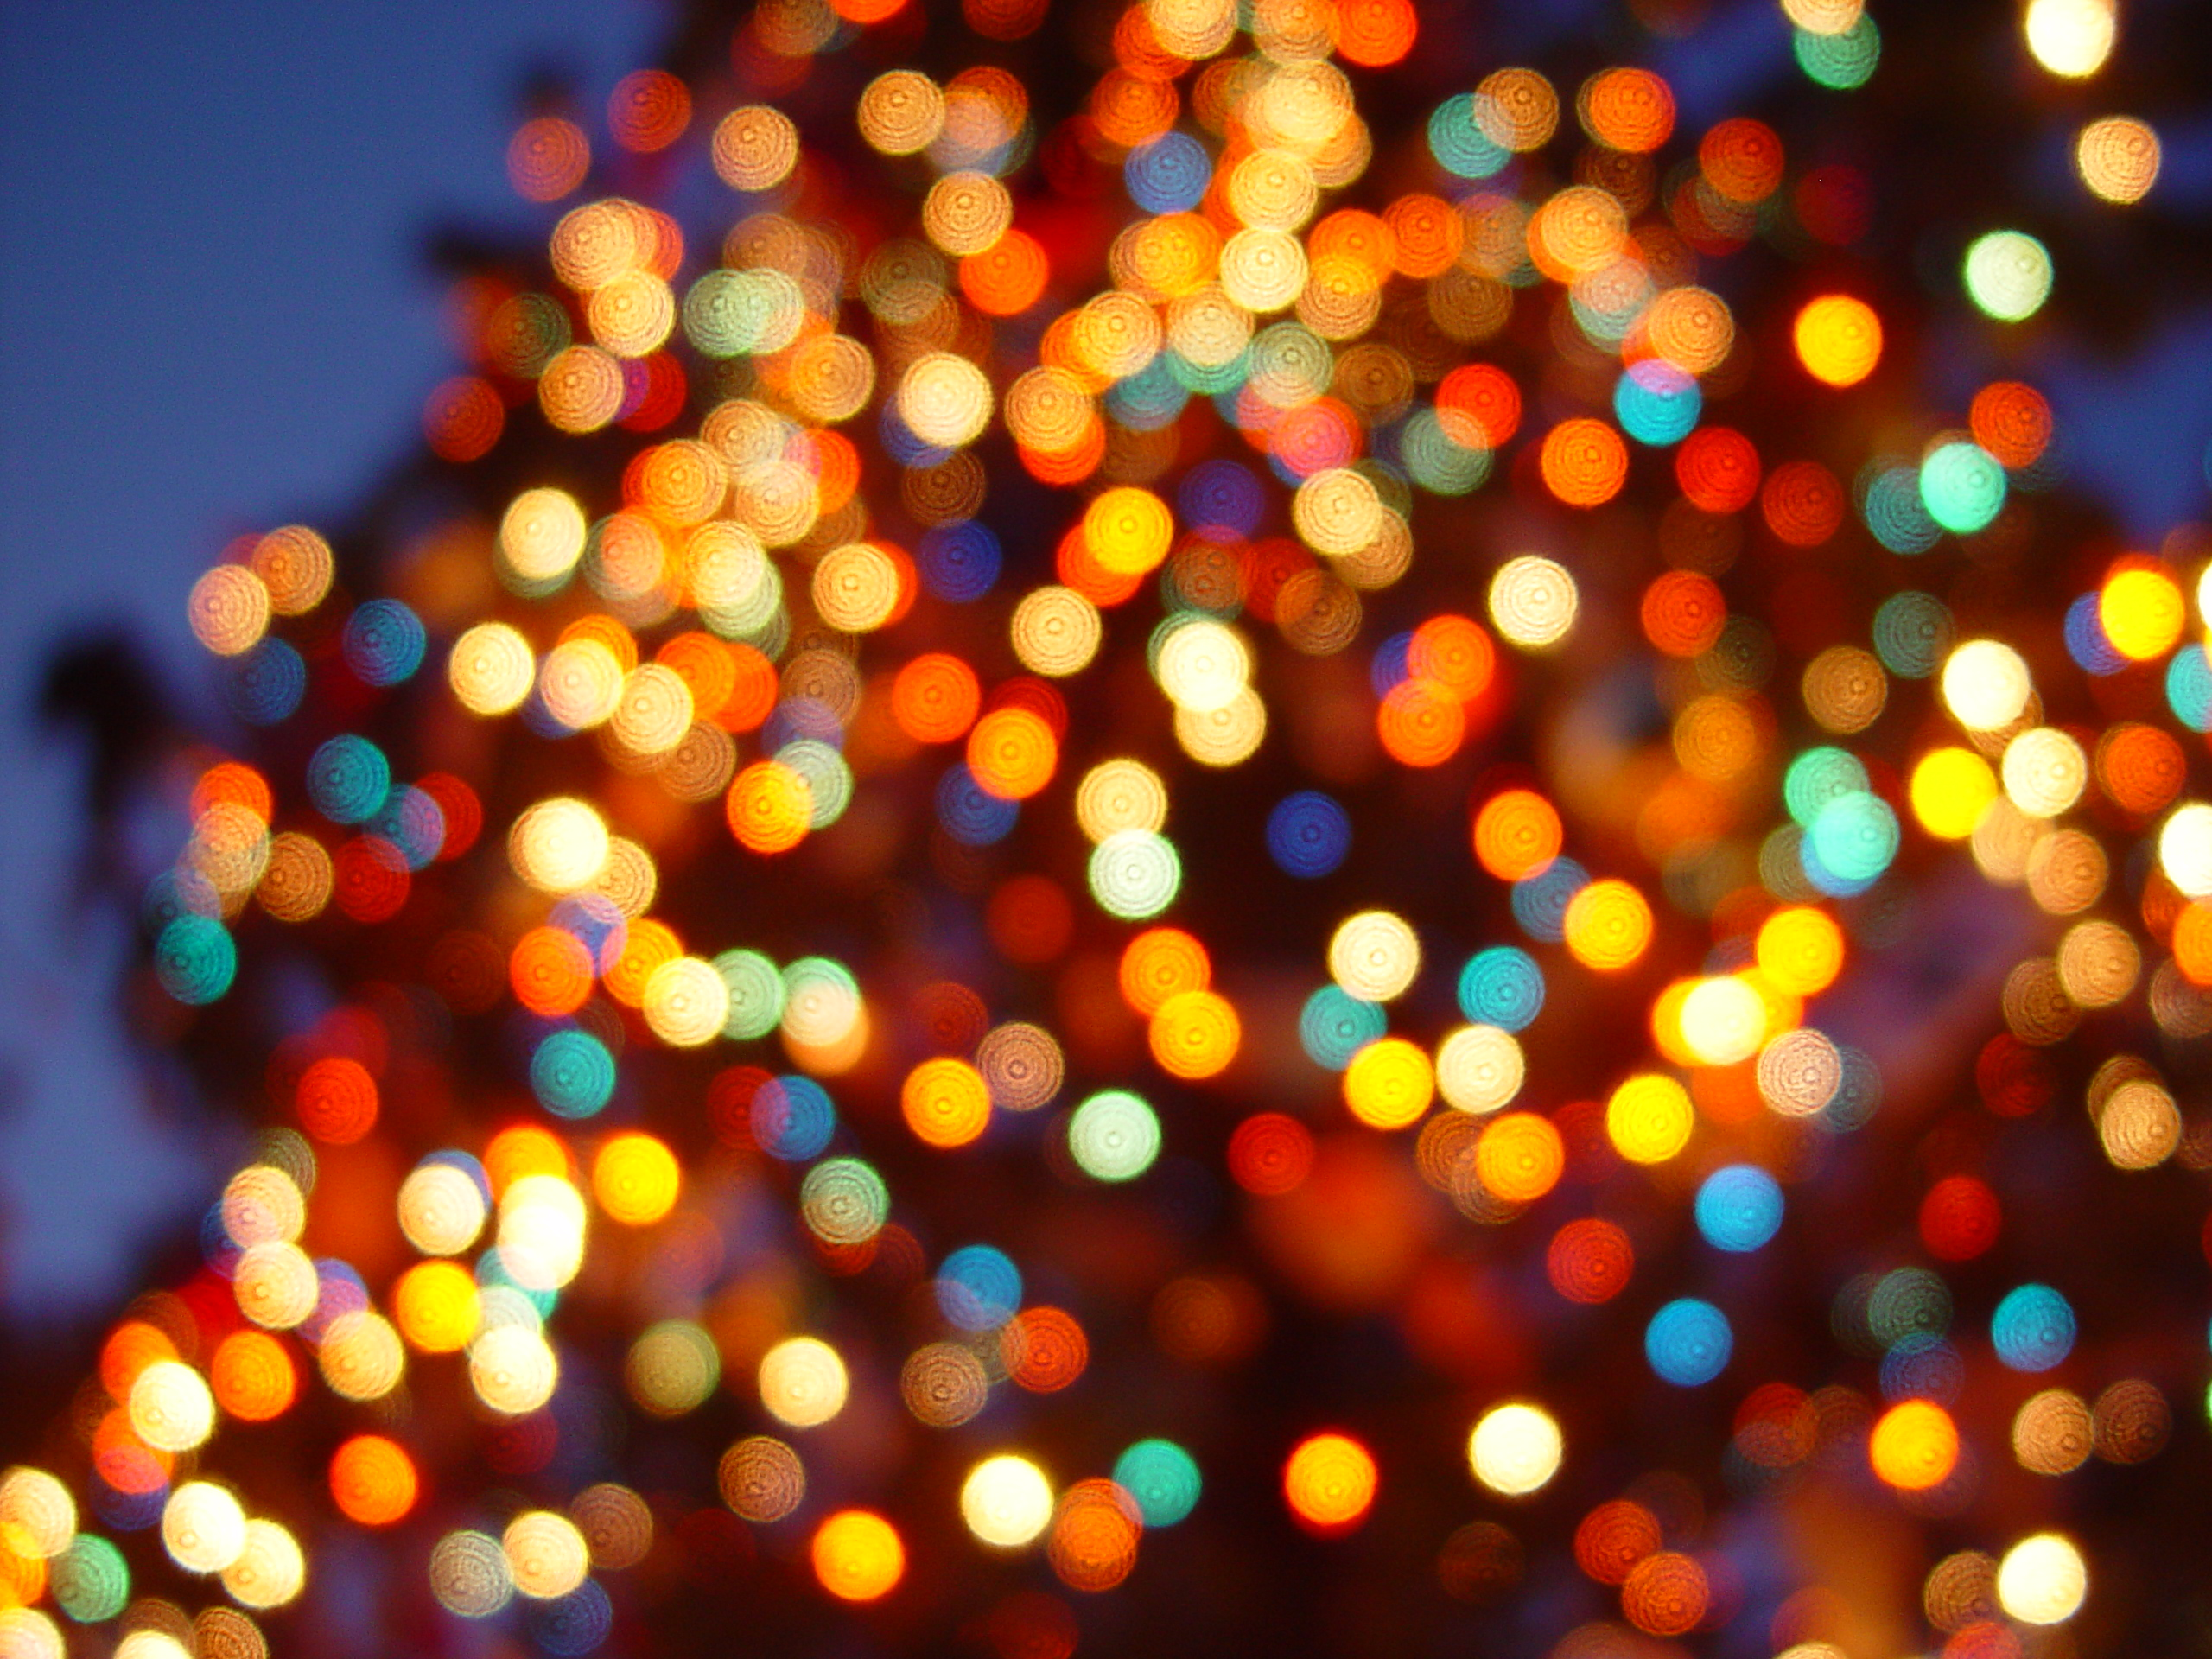 Christmas Lights Wallpaper 2560x1920 65603